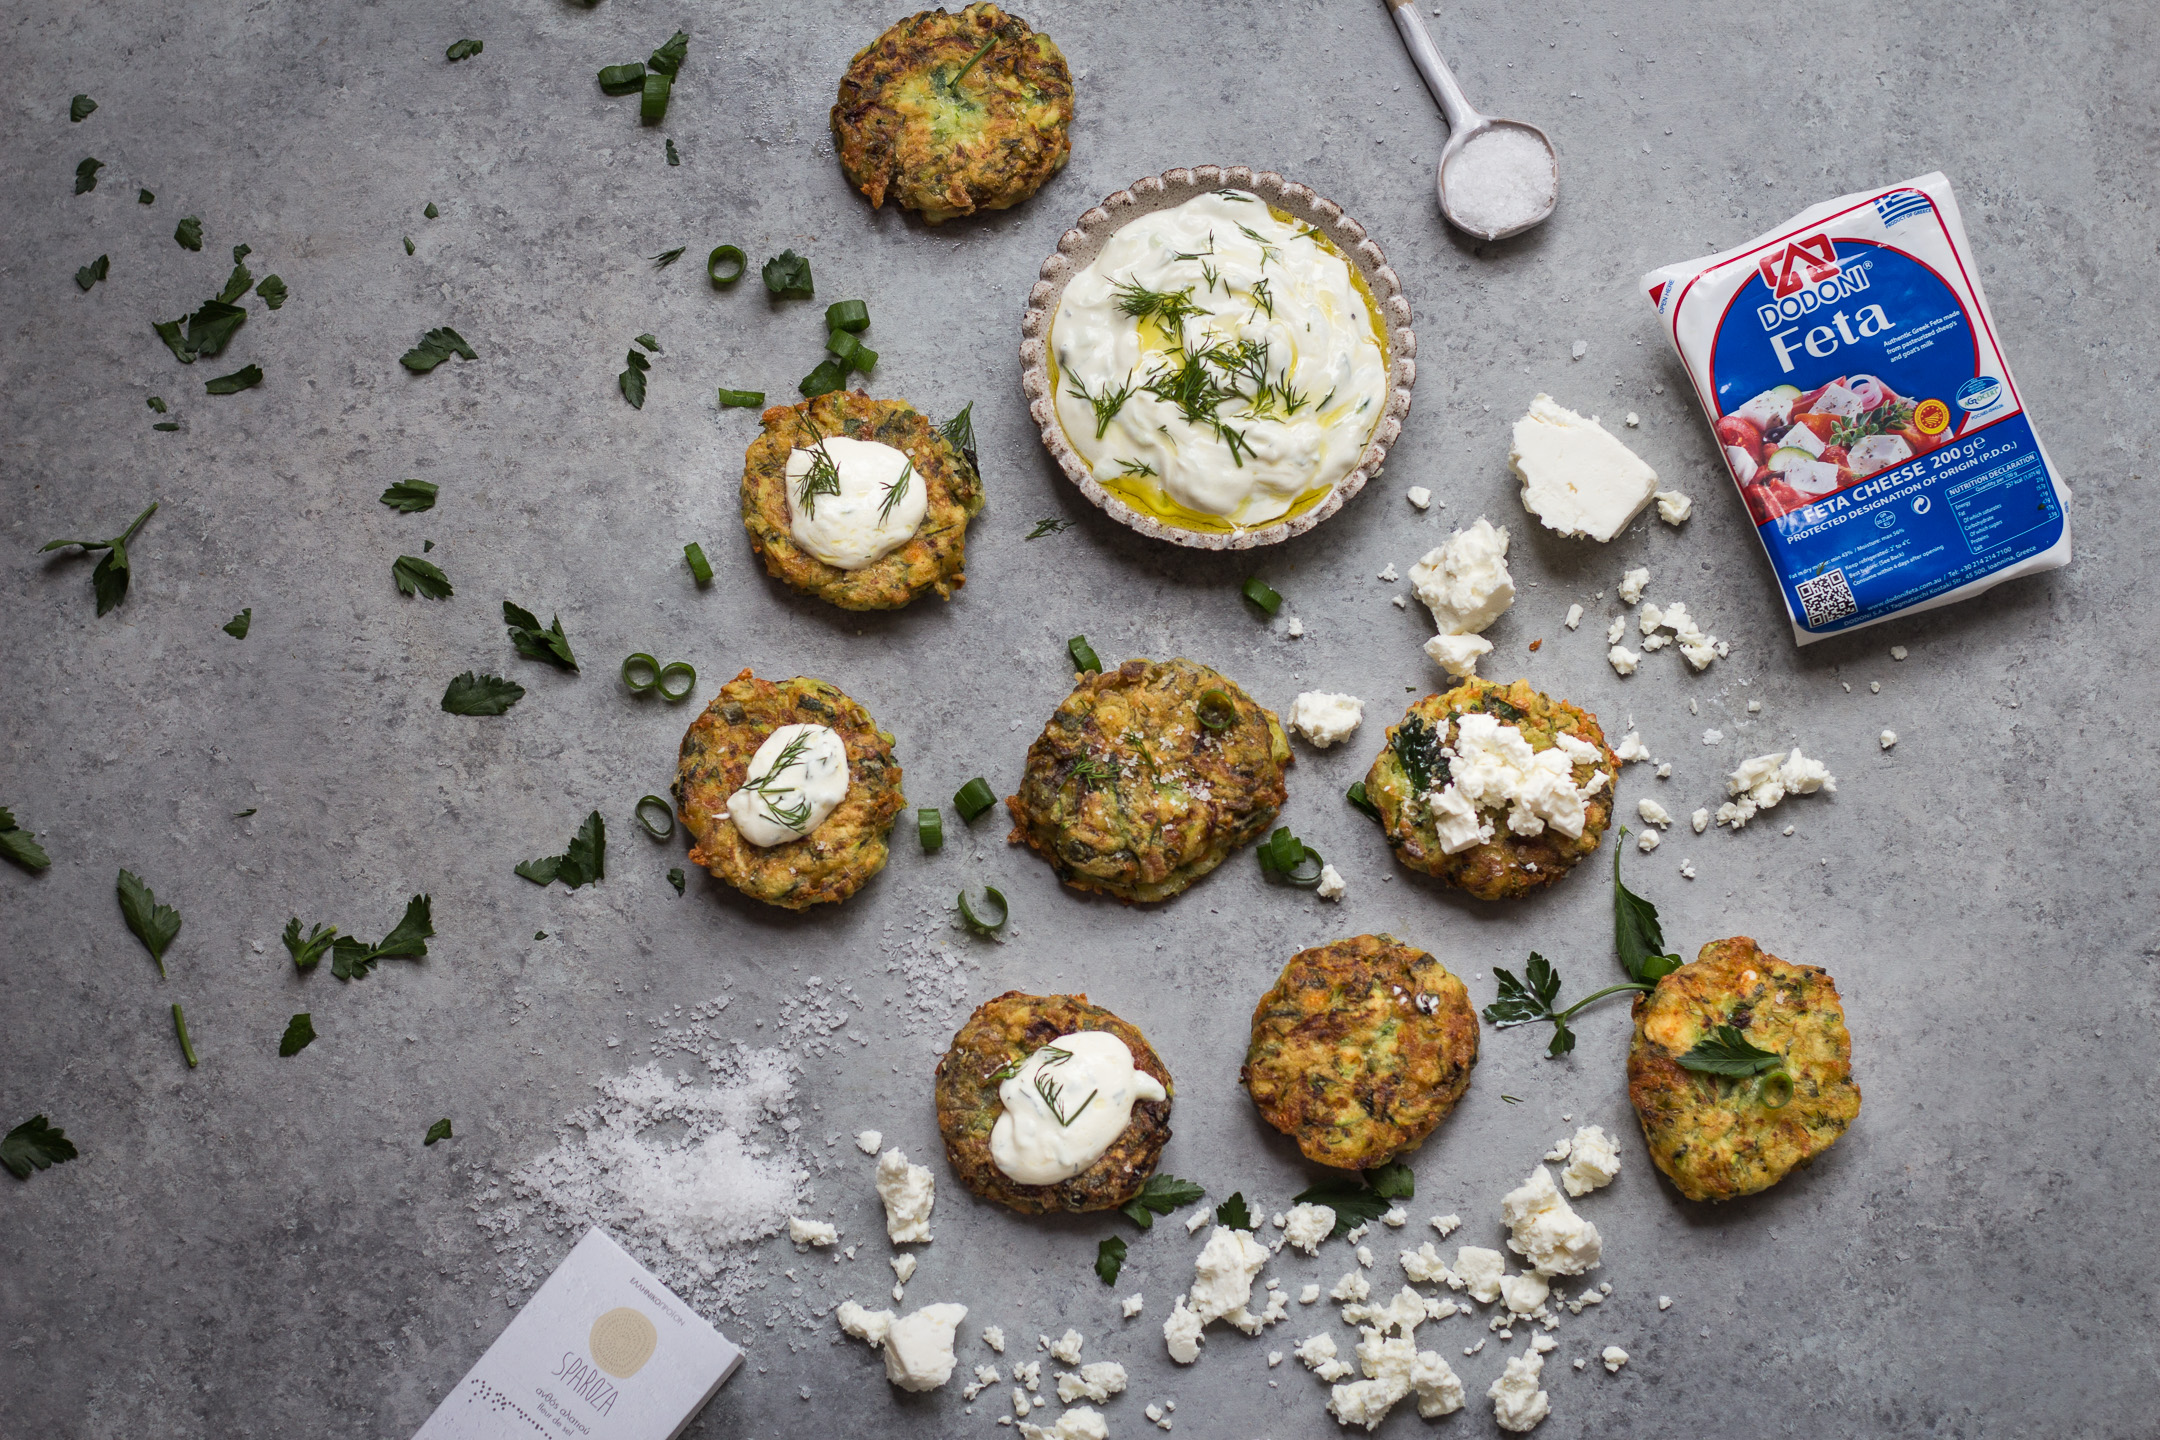 GREEK KOLOKITHOKEFTEDES (ZUCCHINI, FETA AND HERB FRITTERS) GLUTEN FREE RECIPE 3